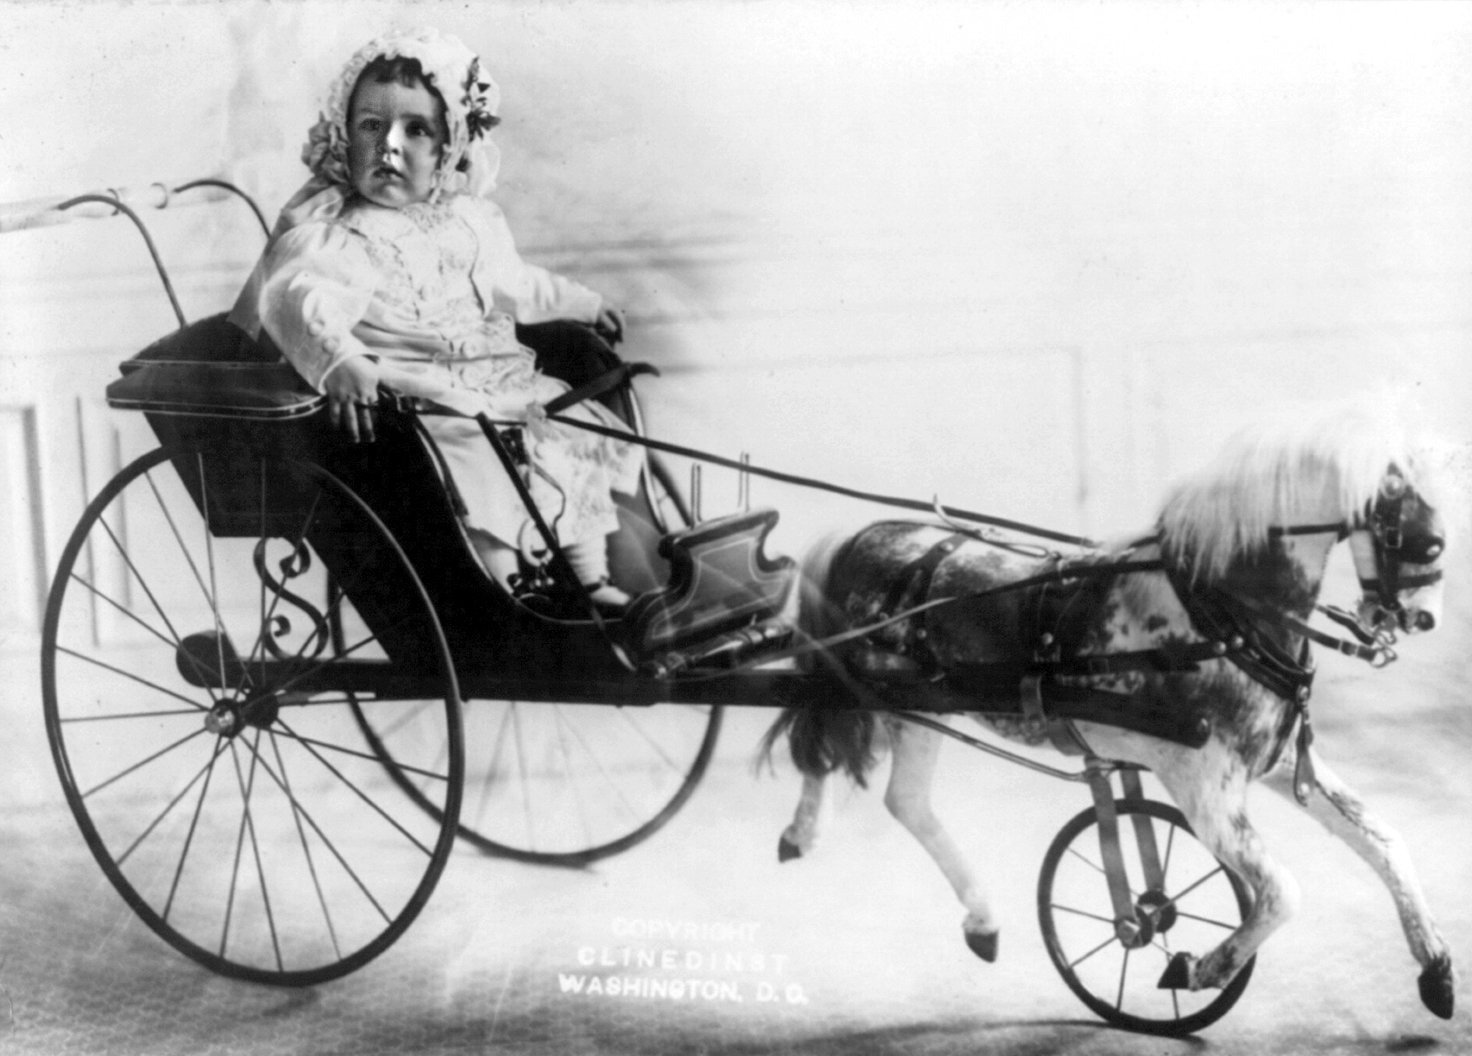 The rich baby's carriage (1910)